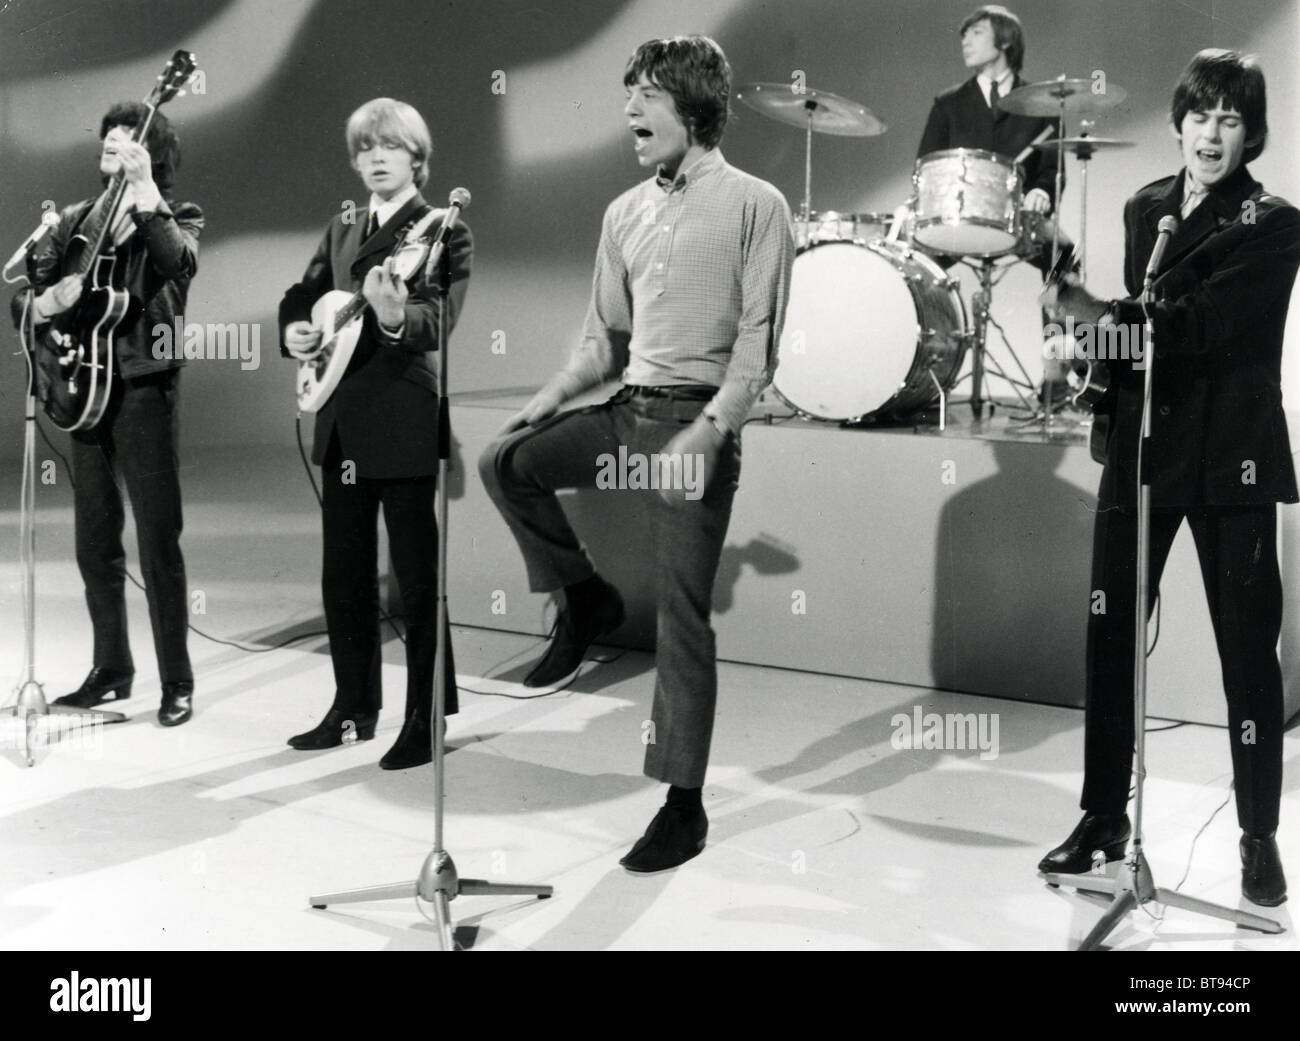 ROLLING STONES On A Dutch TV Show In 1963. From L: Bill